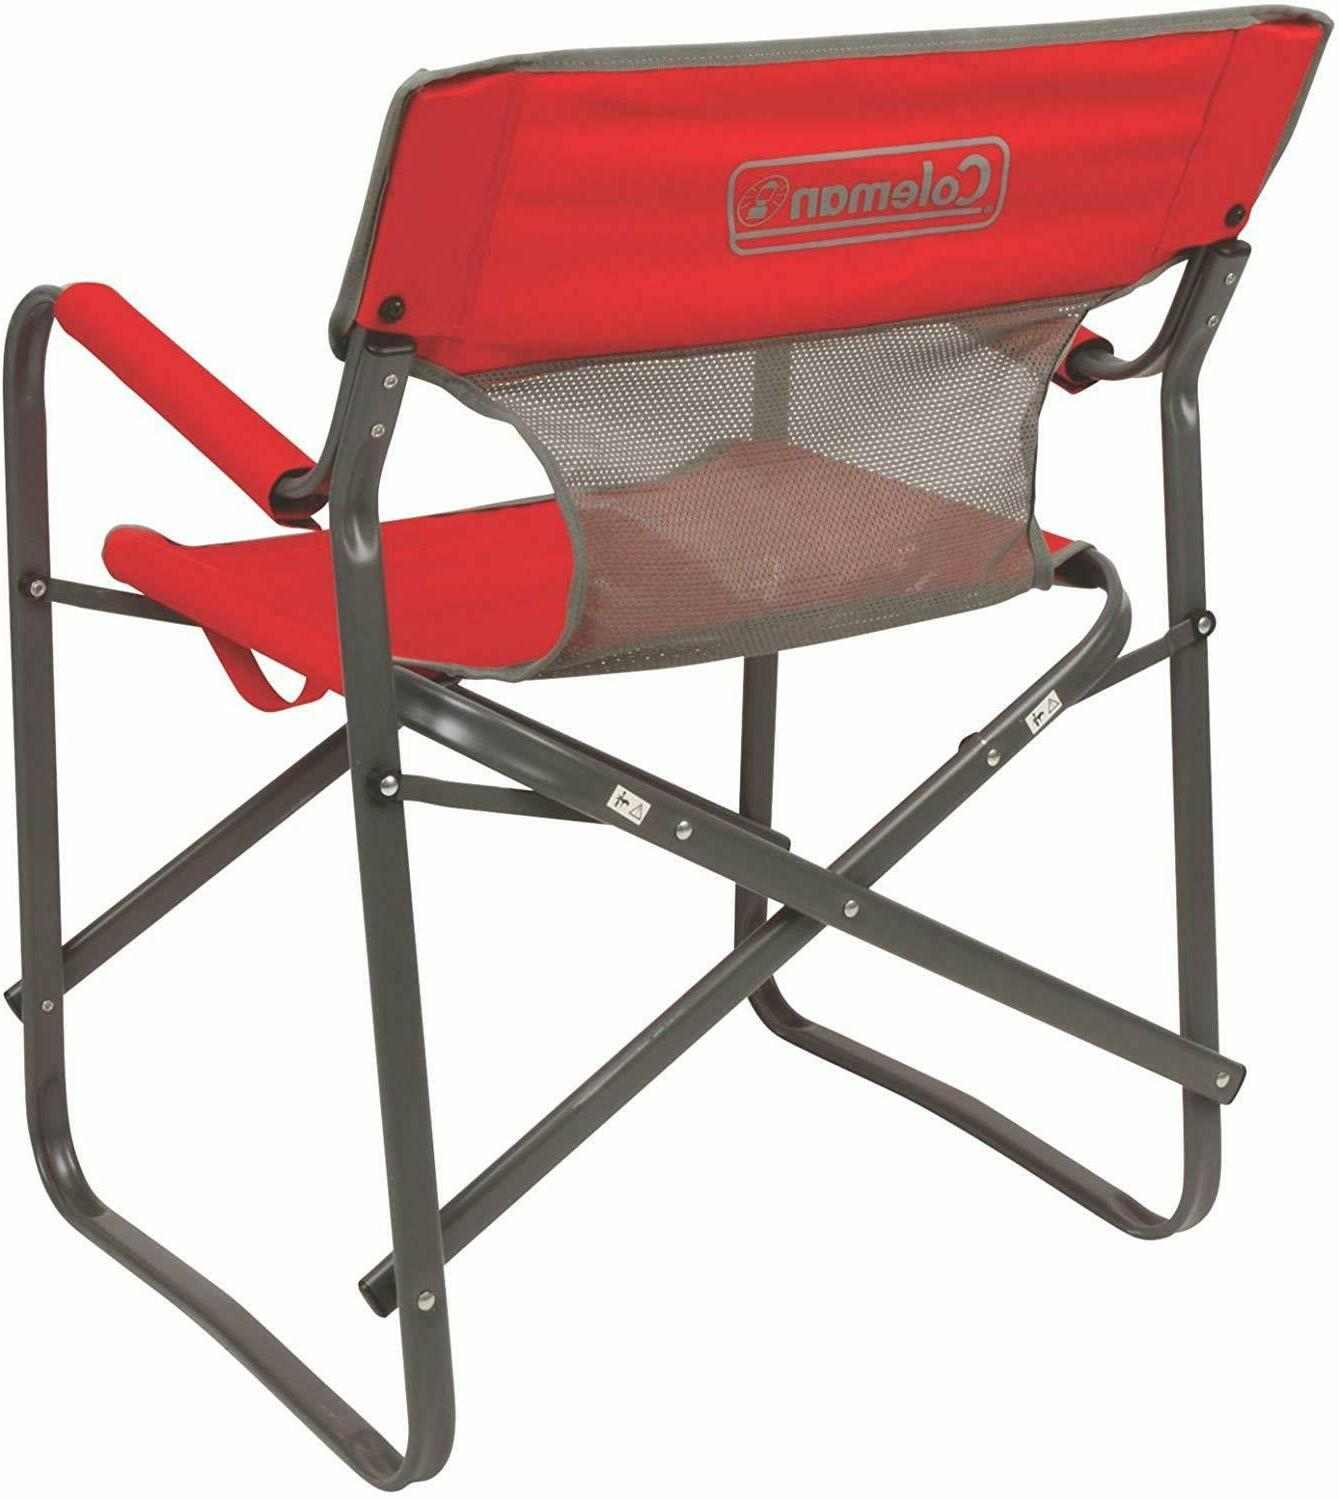 Portable Folding Camping Chair Outdoor Director Oversized Deck